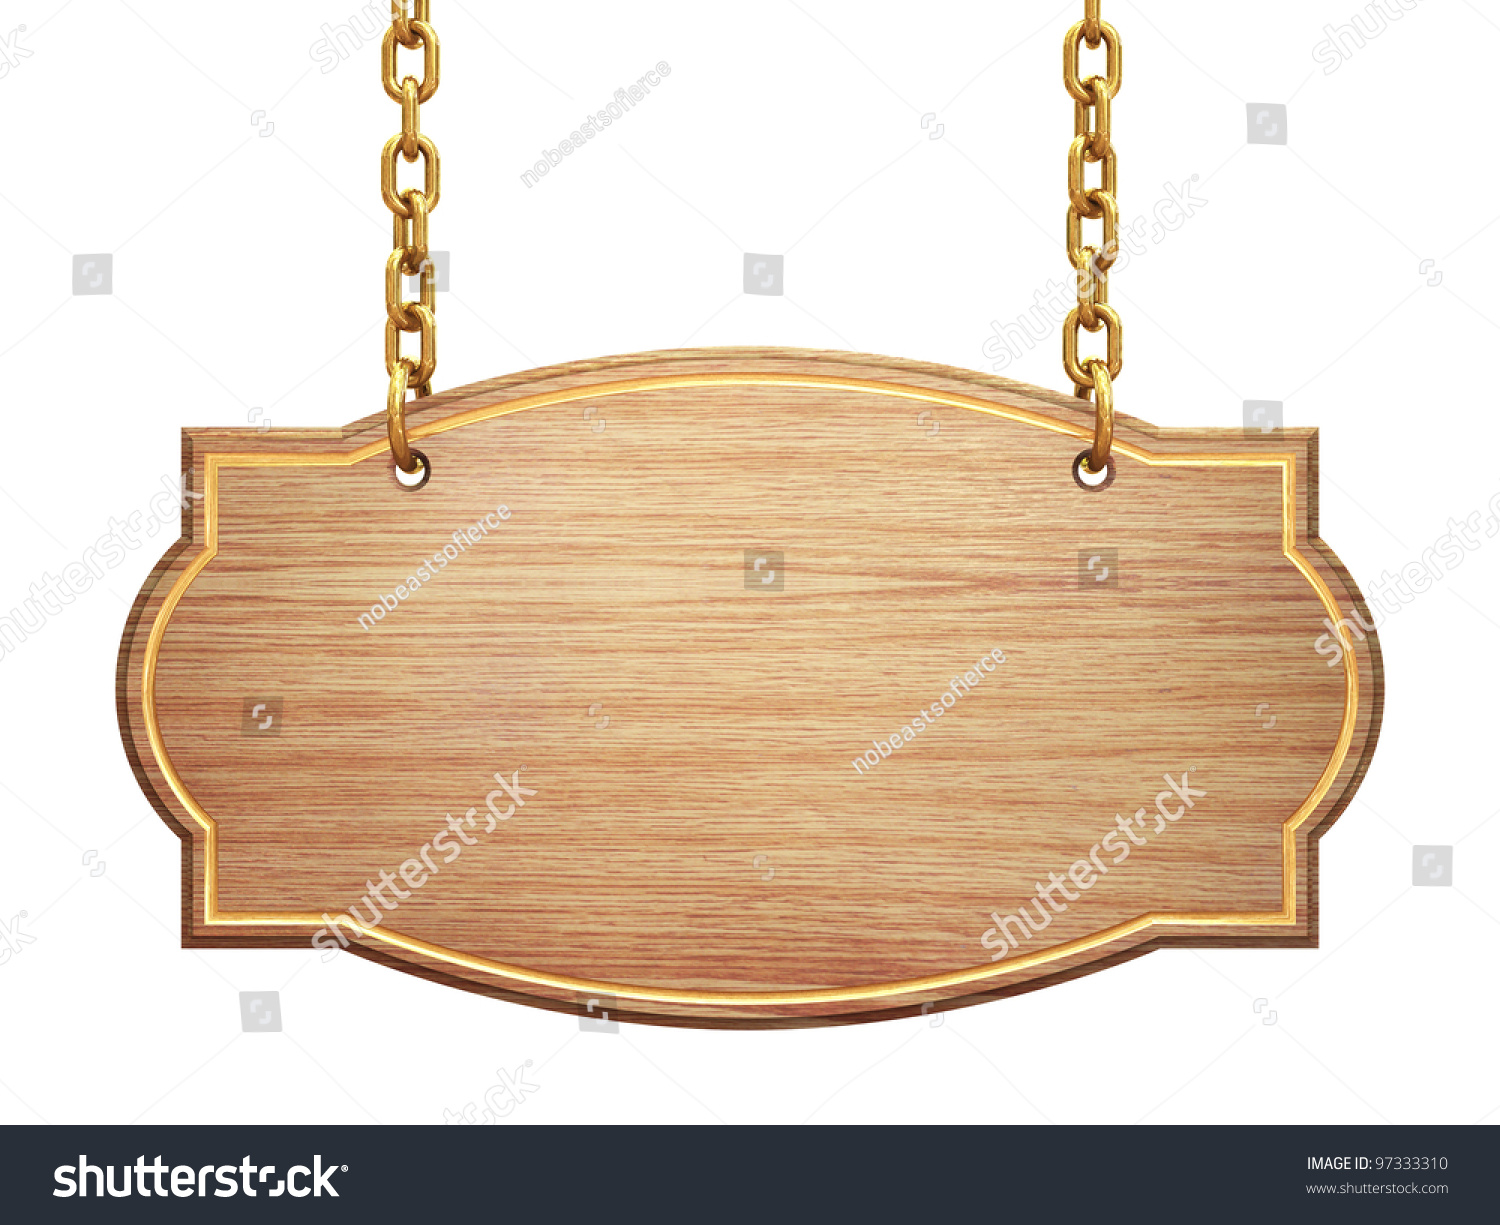 blank wooden signboard hanging on brass chains isolated